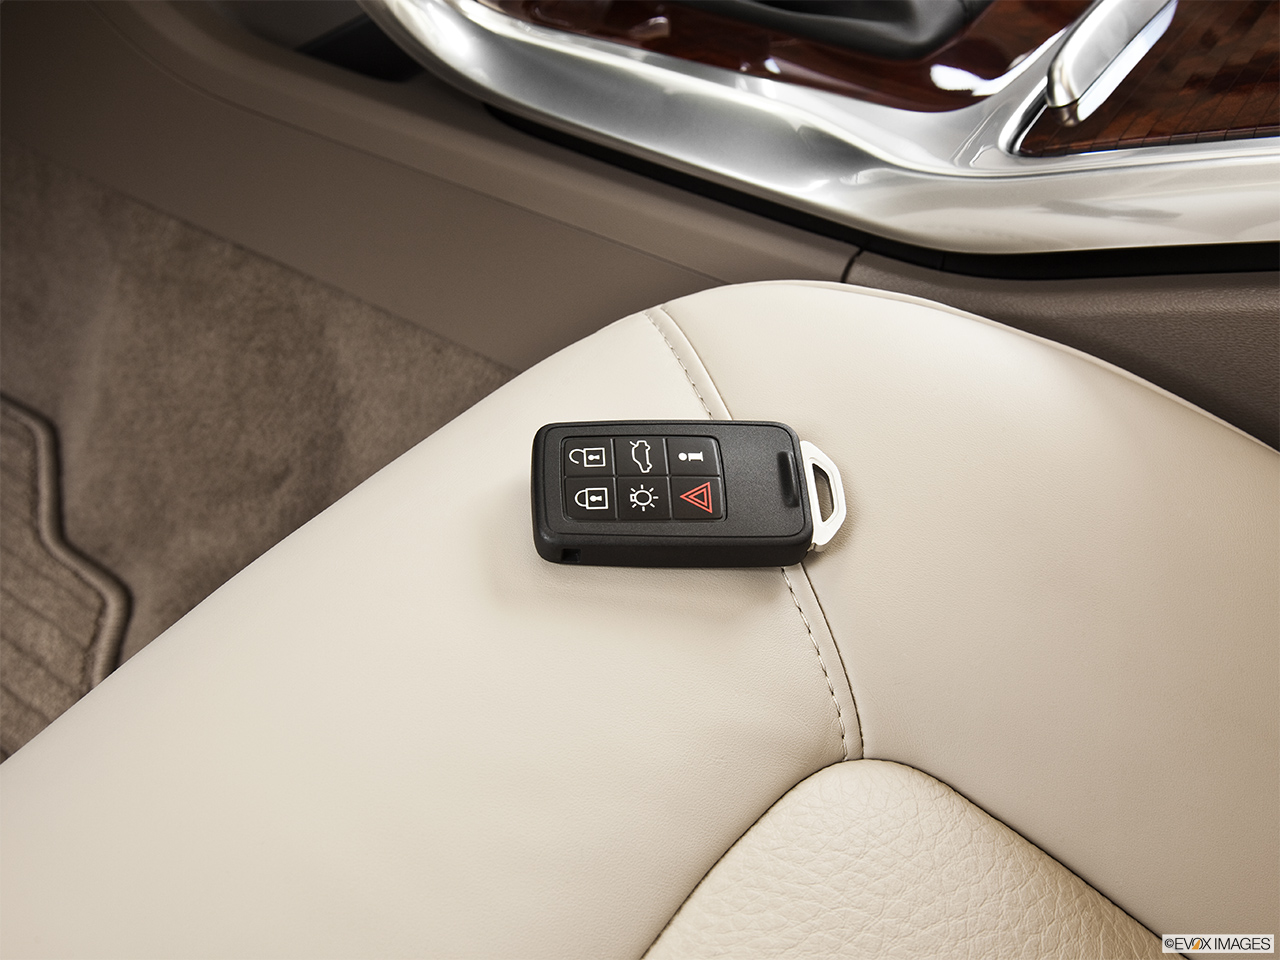 2014 Volvo S80 T6 AWD Platinum Key fob on driver's seat.